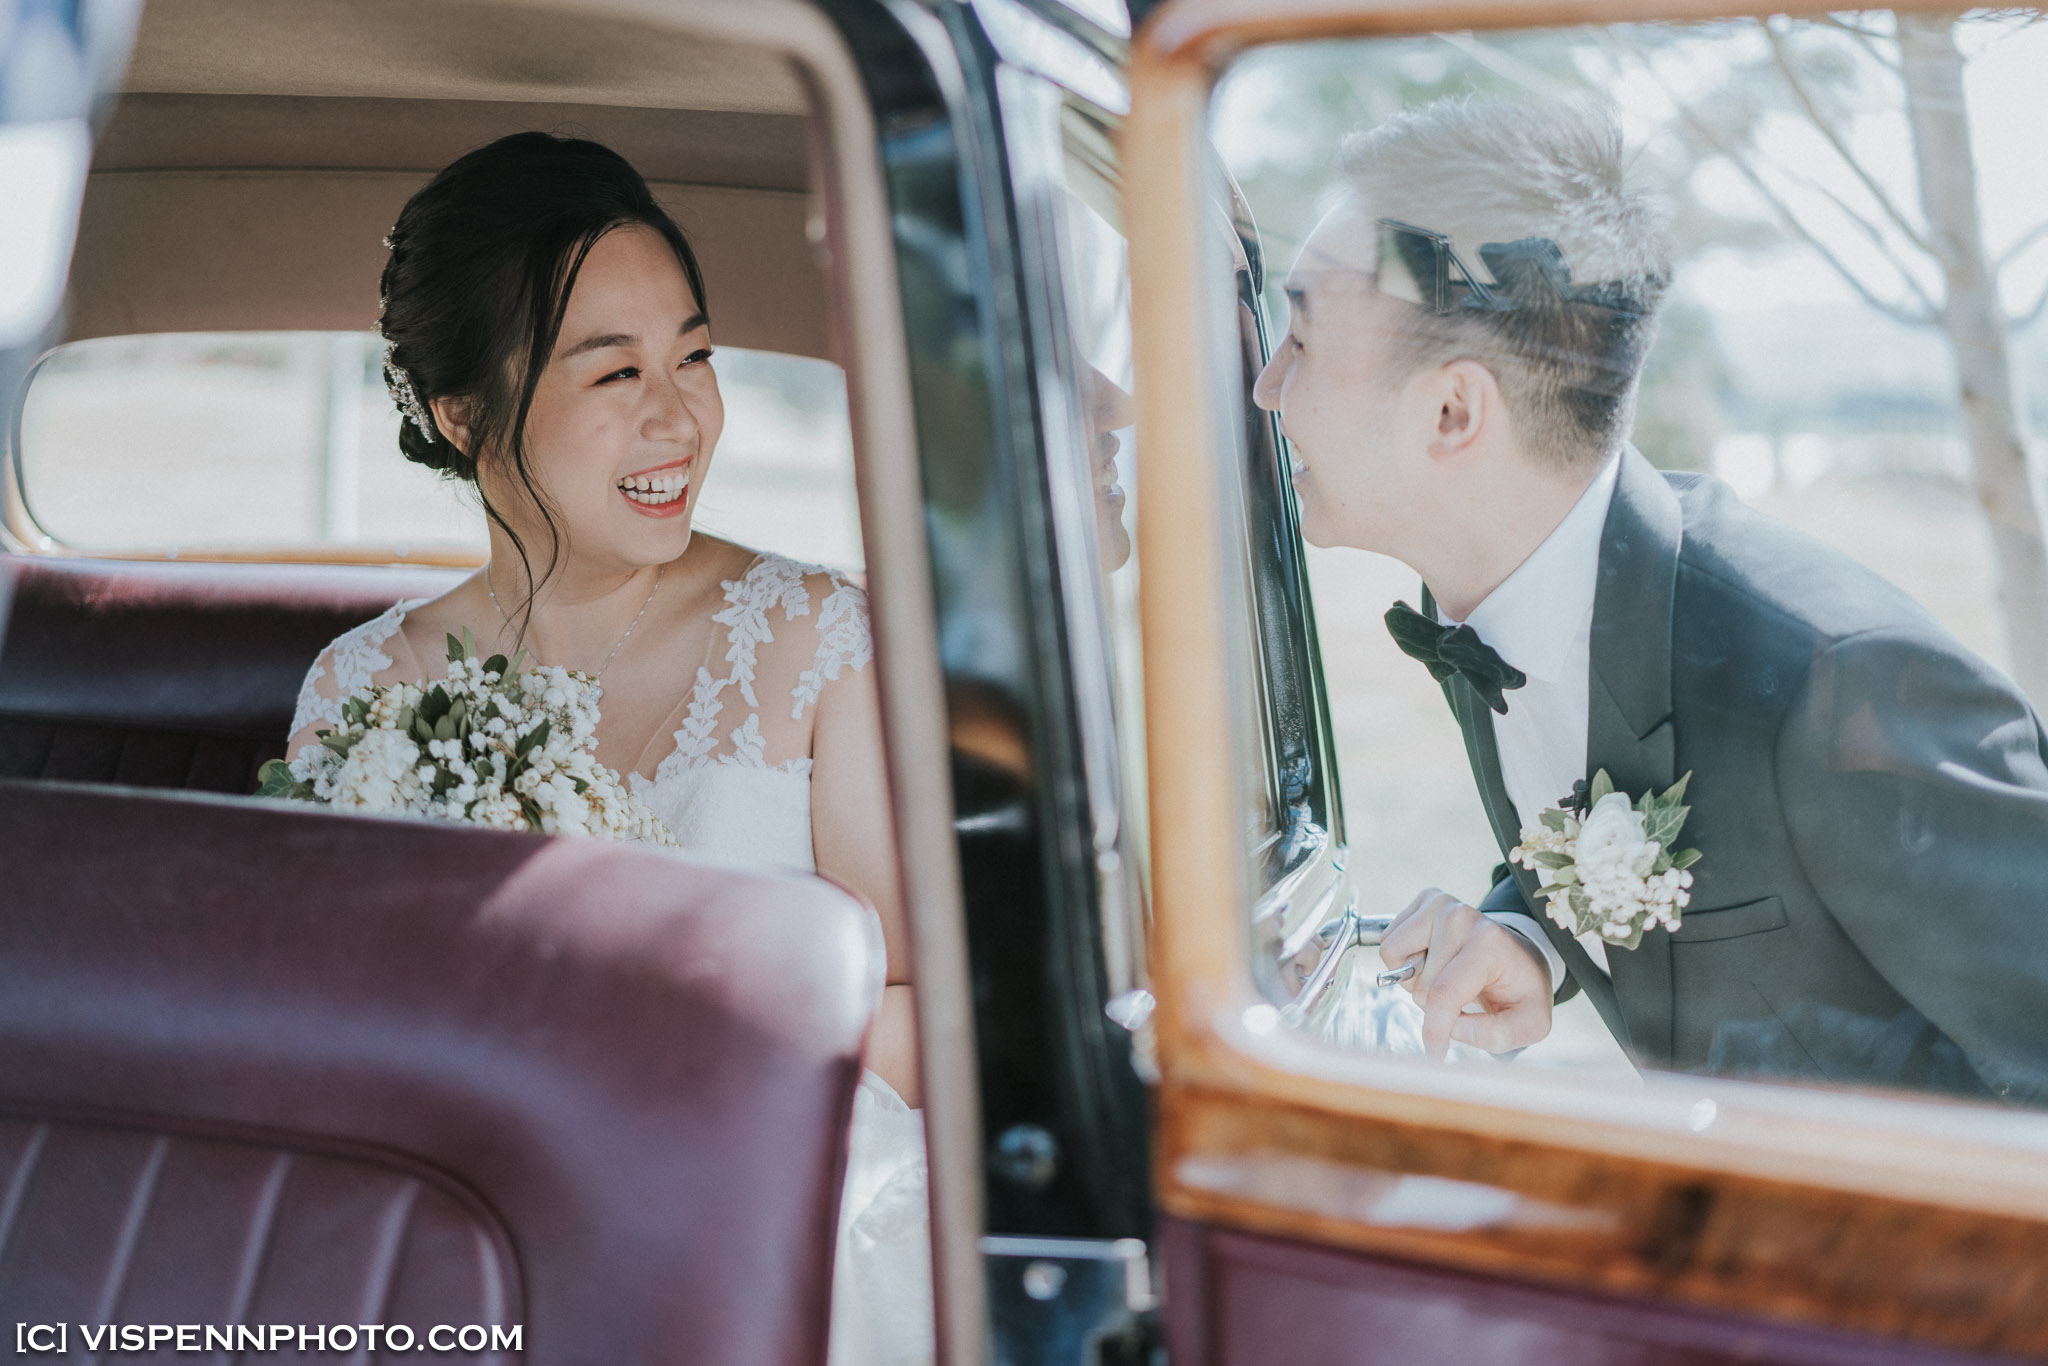 WEDDING DAY Photography Melbourne VISPENN 墨尔本 婚礼跟拍 婚礼摄像 婚礼摄影 结婚照 登记照 LeanneWesley 02699 4H A7R3 VISPENN